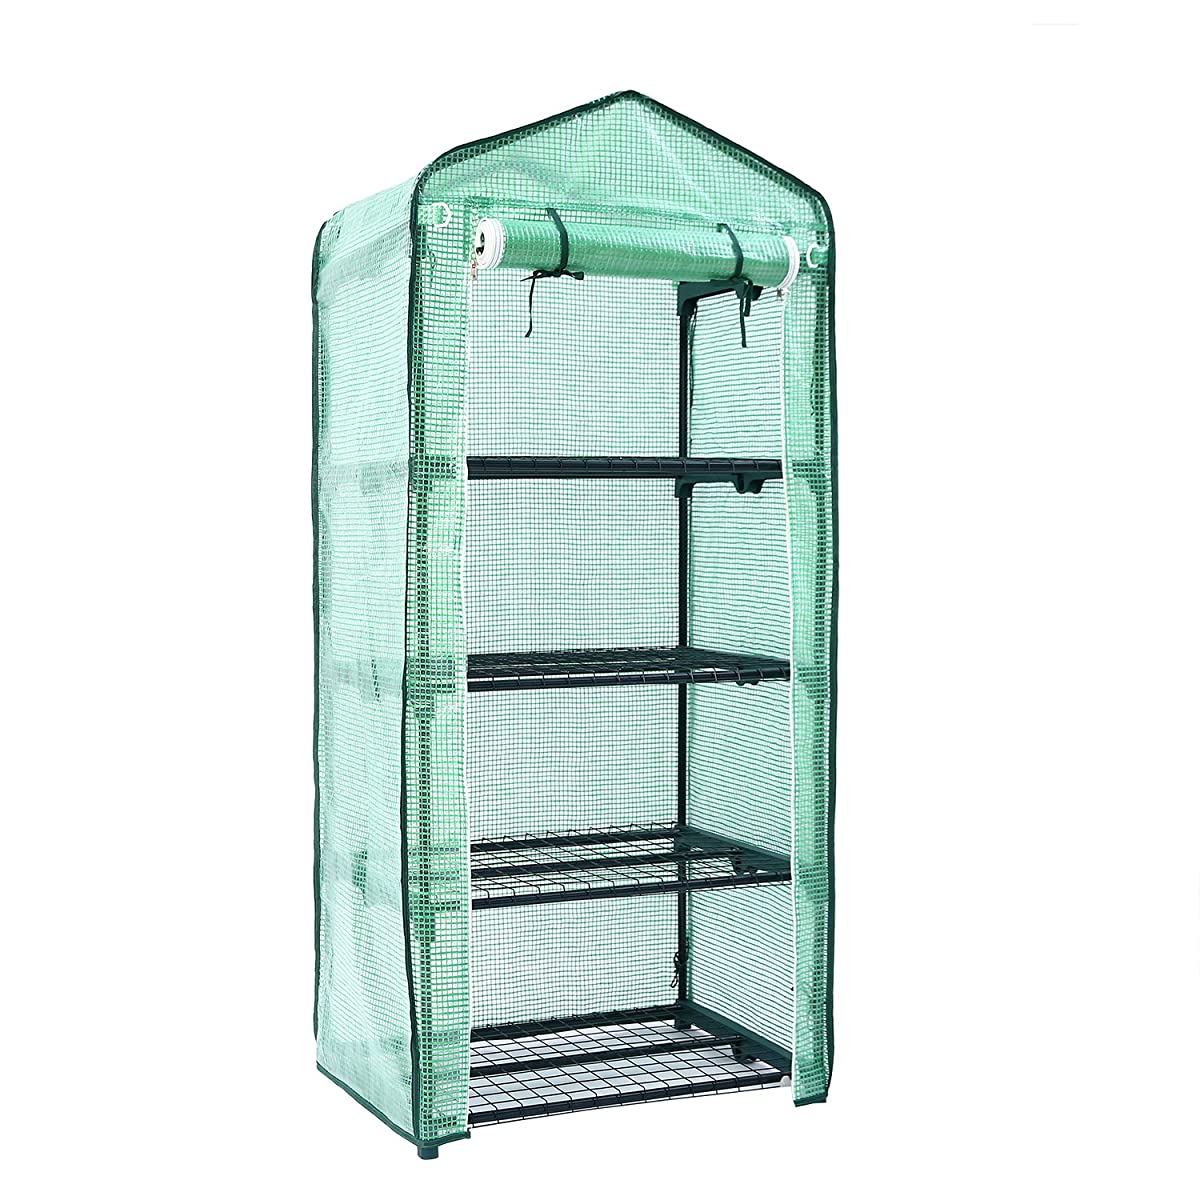 "Mini Greenhouse, Ohuhu Small Plant Greenhouses, 4 Tier Rack Stands Portable Garden Green House for Outdoor & Indoor, 27"" Long x 18"" Wide x 63"" High"